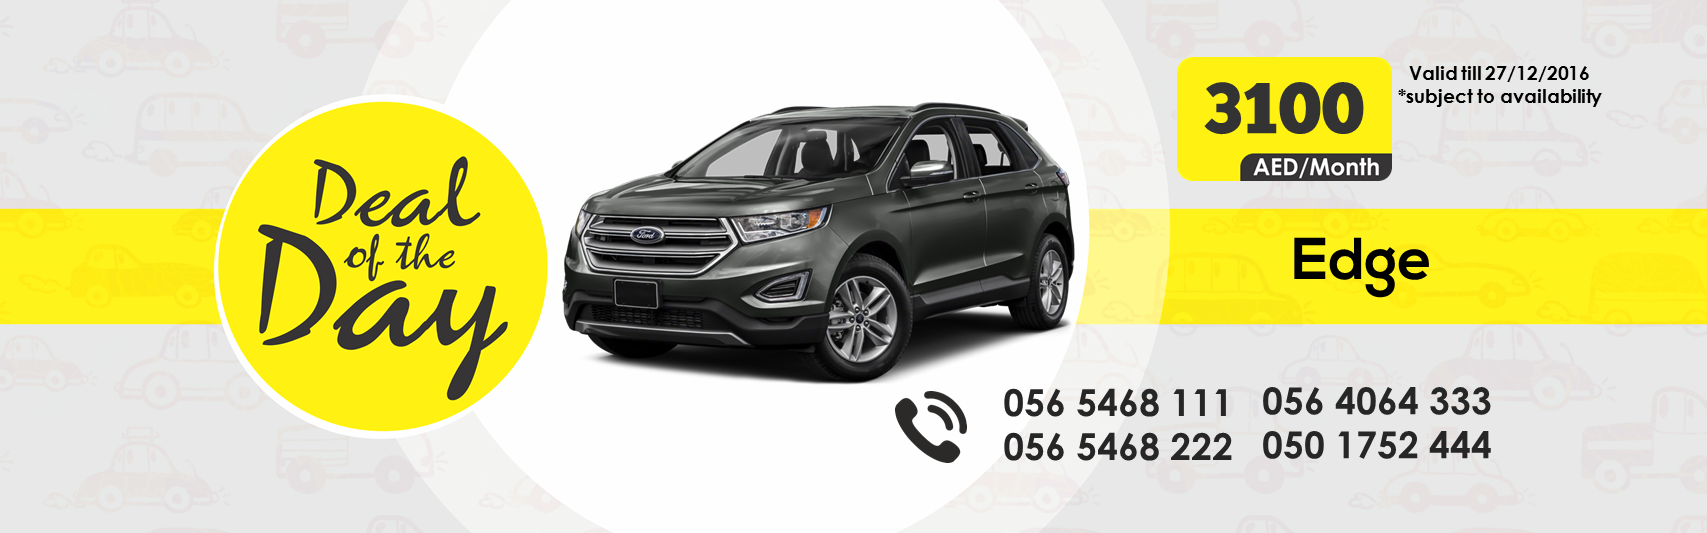 Deal Of The Day Aroma Rent A Car Online Car Rental Car Lease